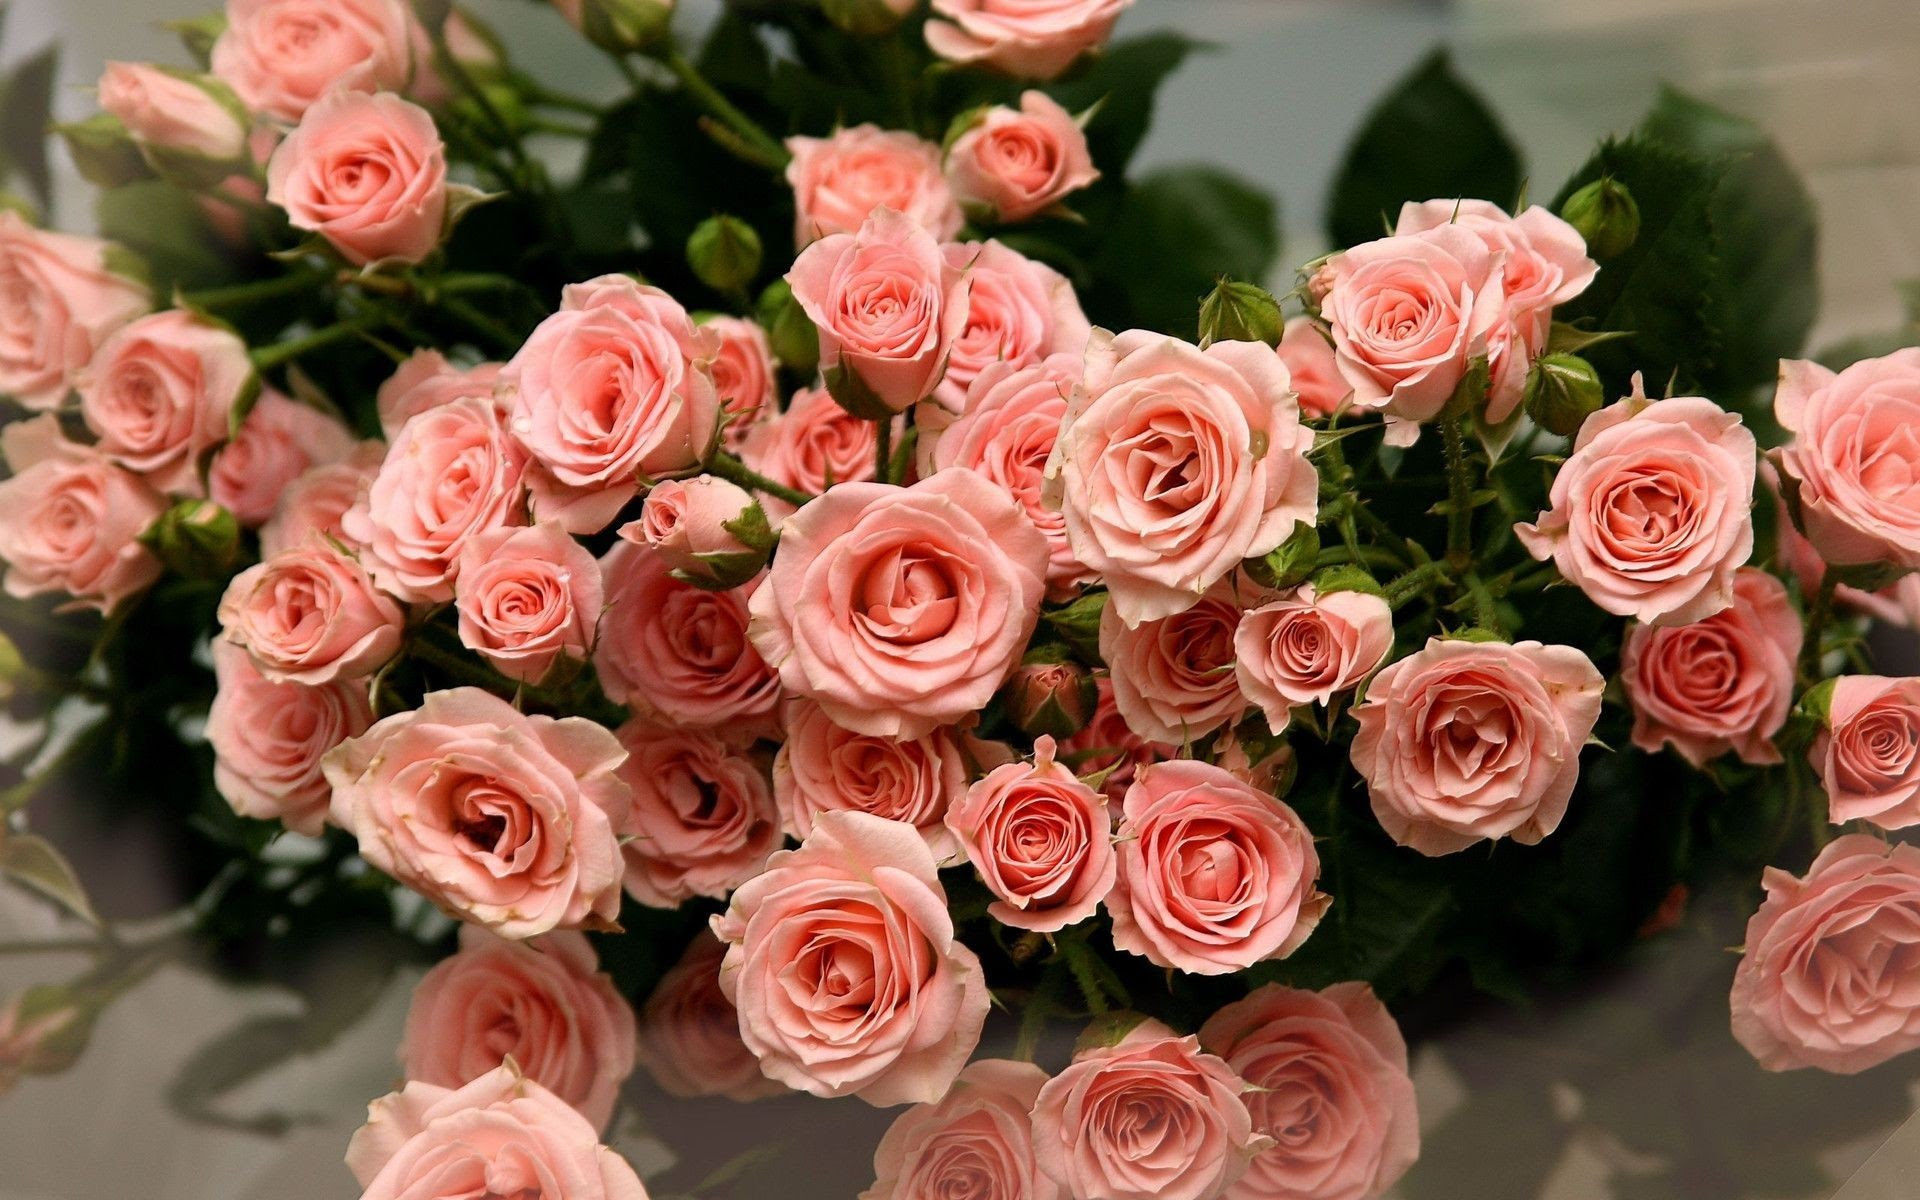 Beautiful Rose Flowers Wallpapers For Desktop Background